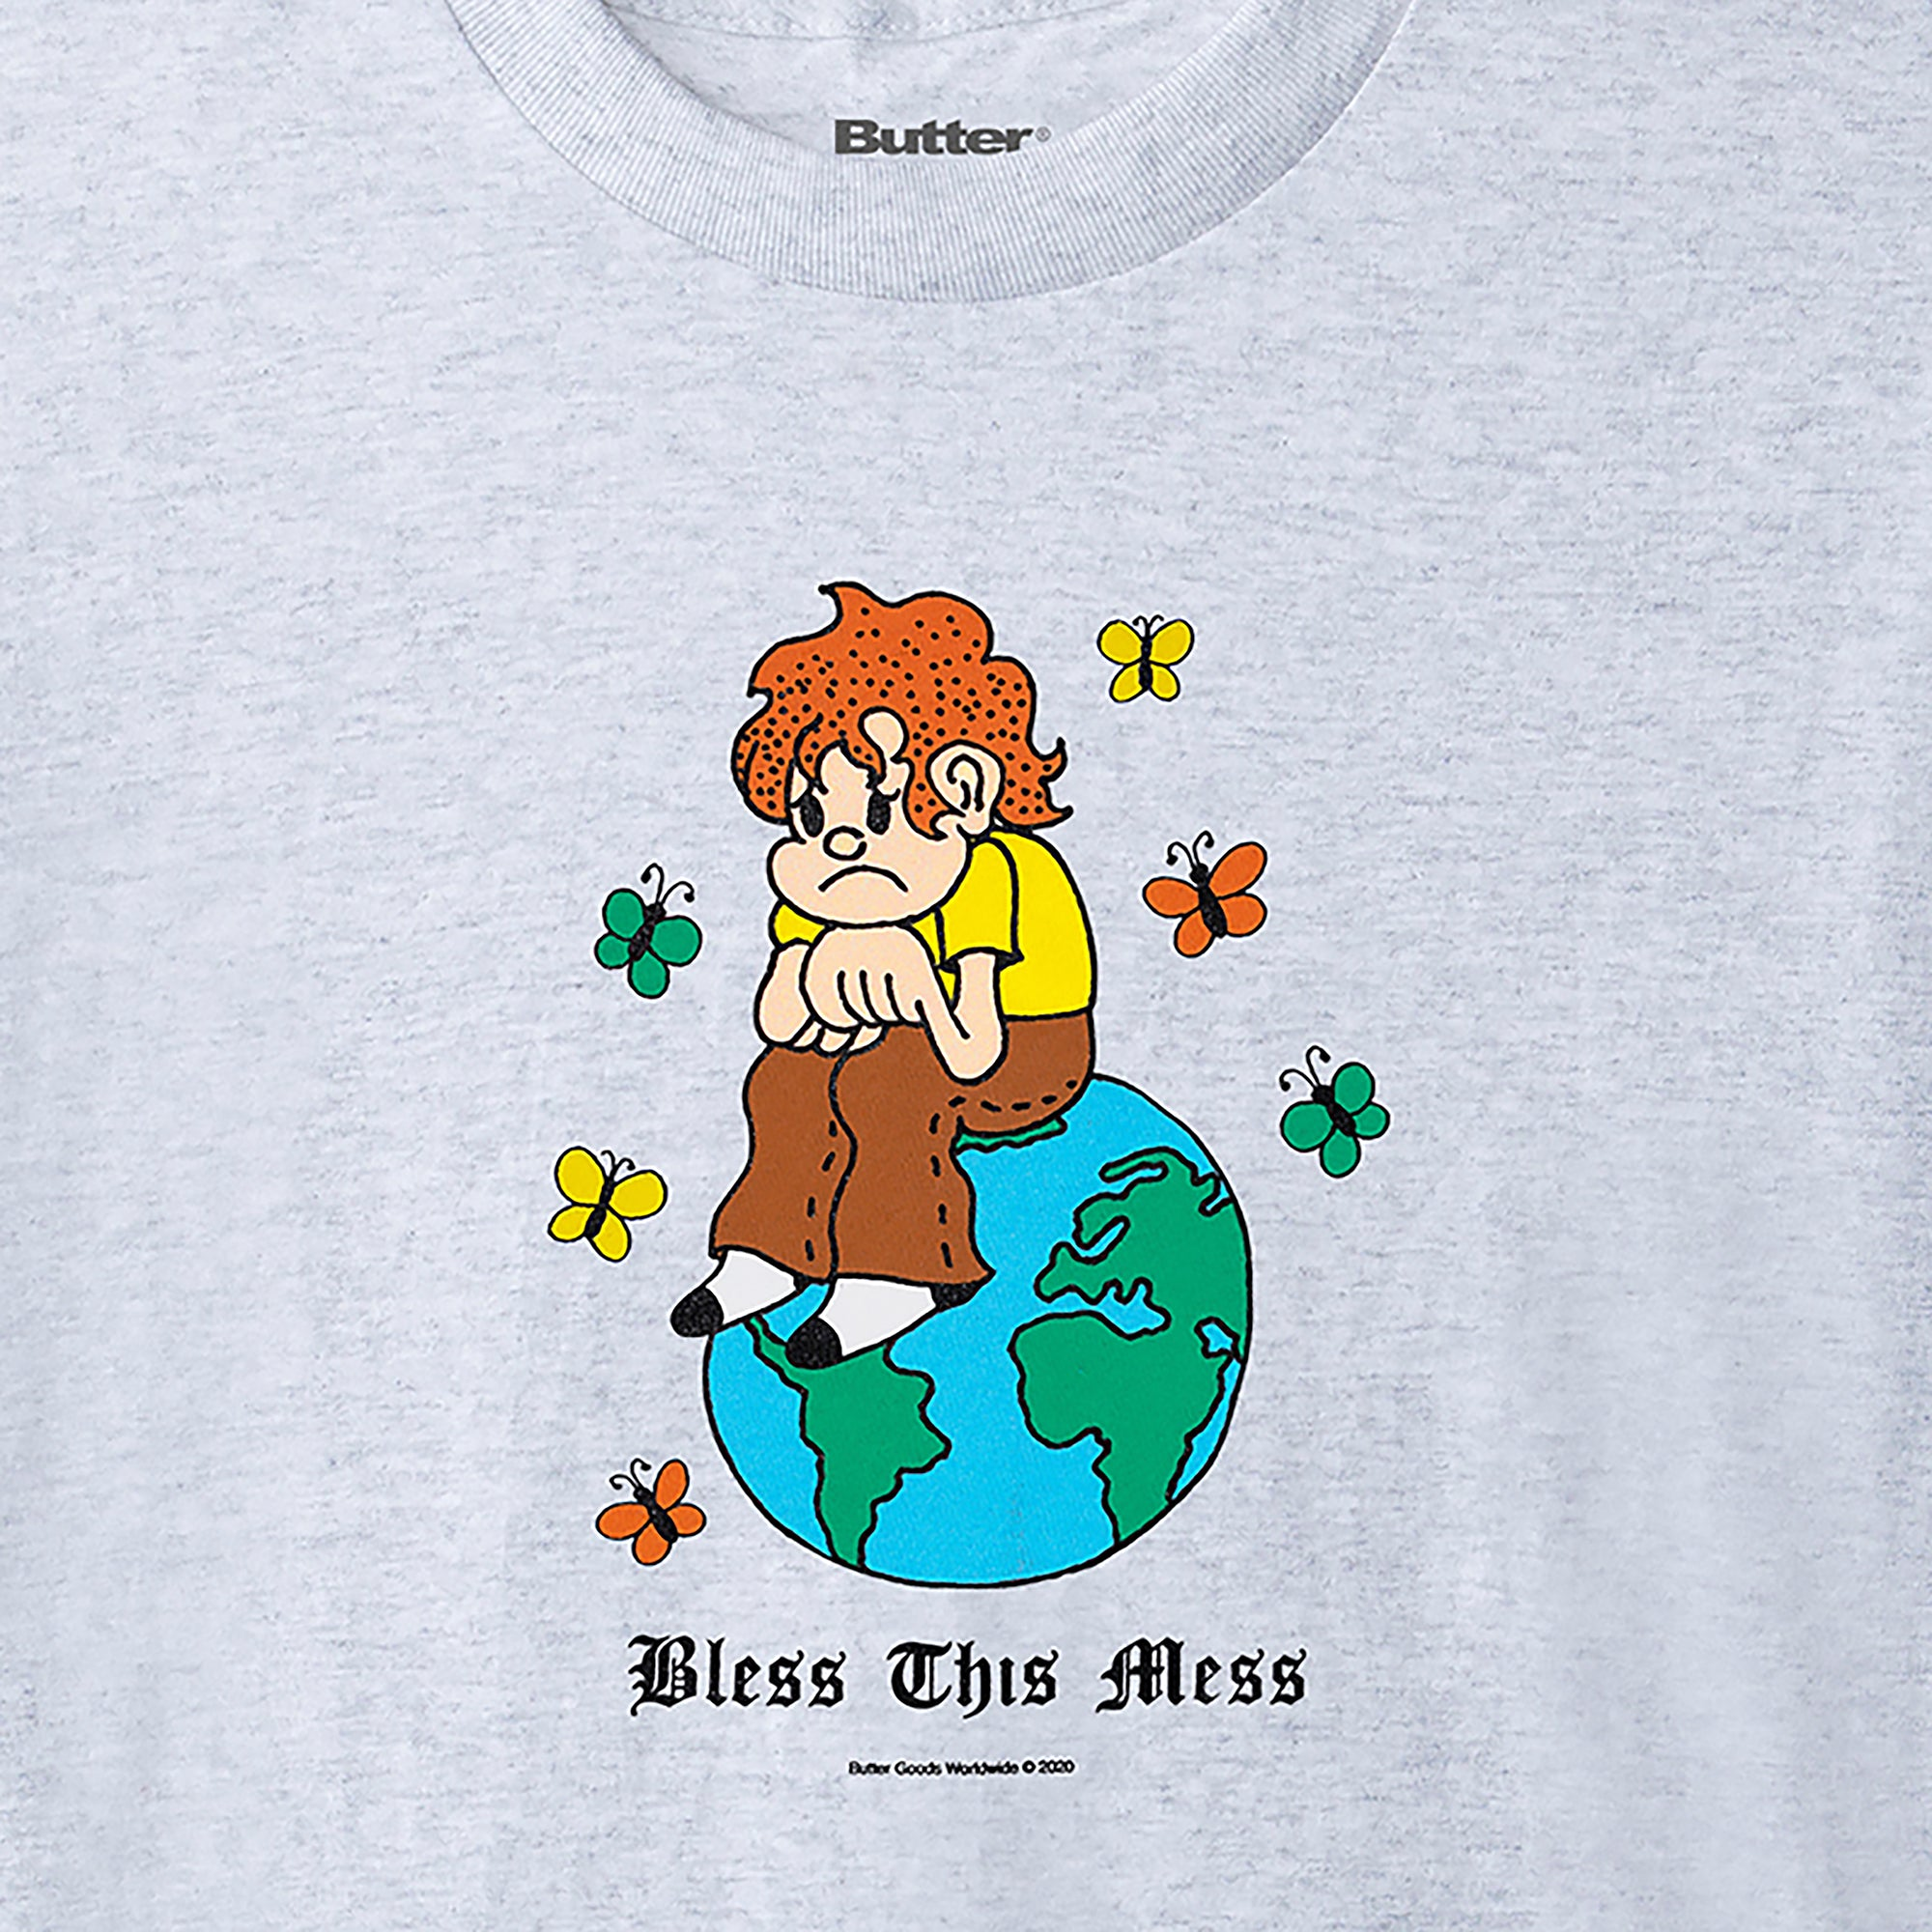 Butter Goods Bless This Mess Tee Product Photo #2